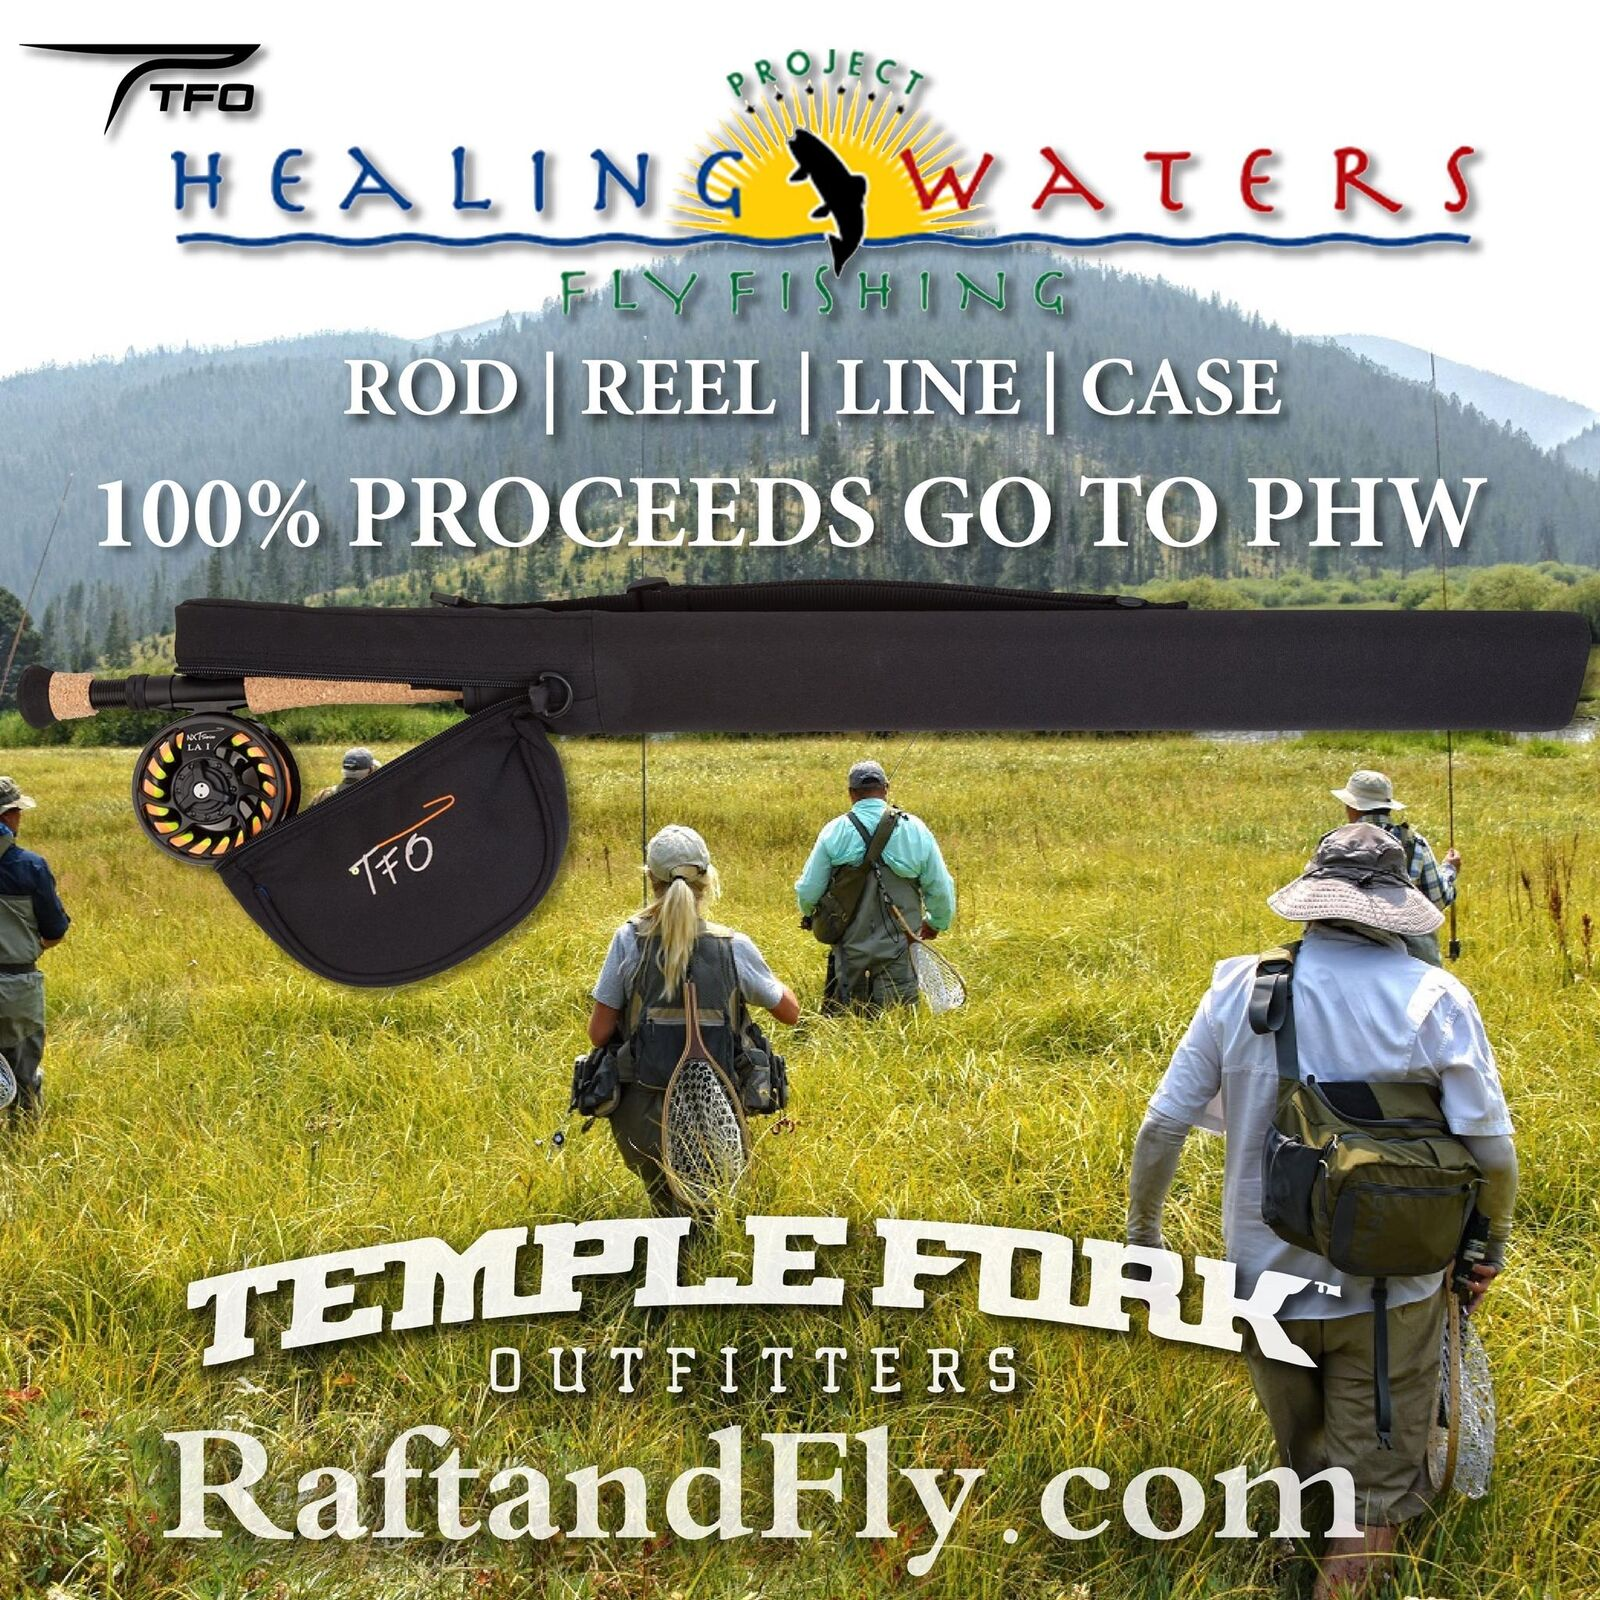 TFO Benefit  Project Healing Water 5wt Kit  100% Donated to PHW